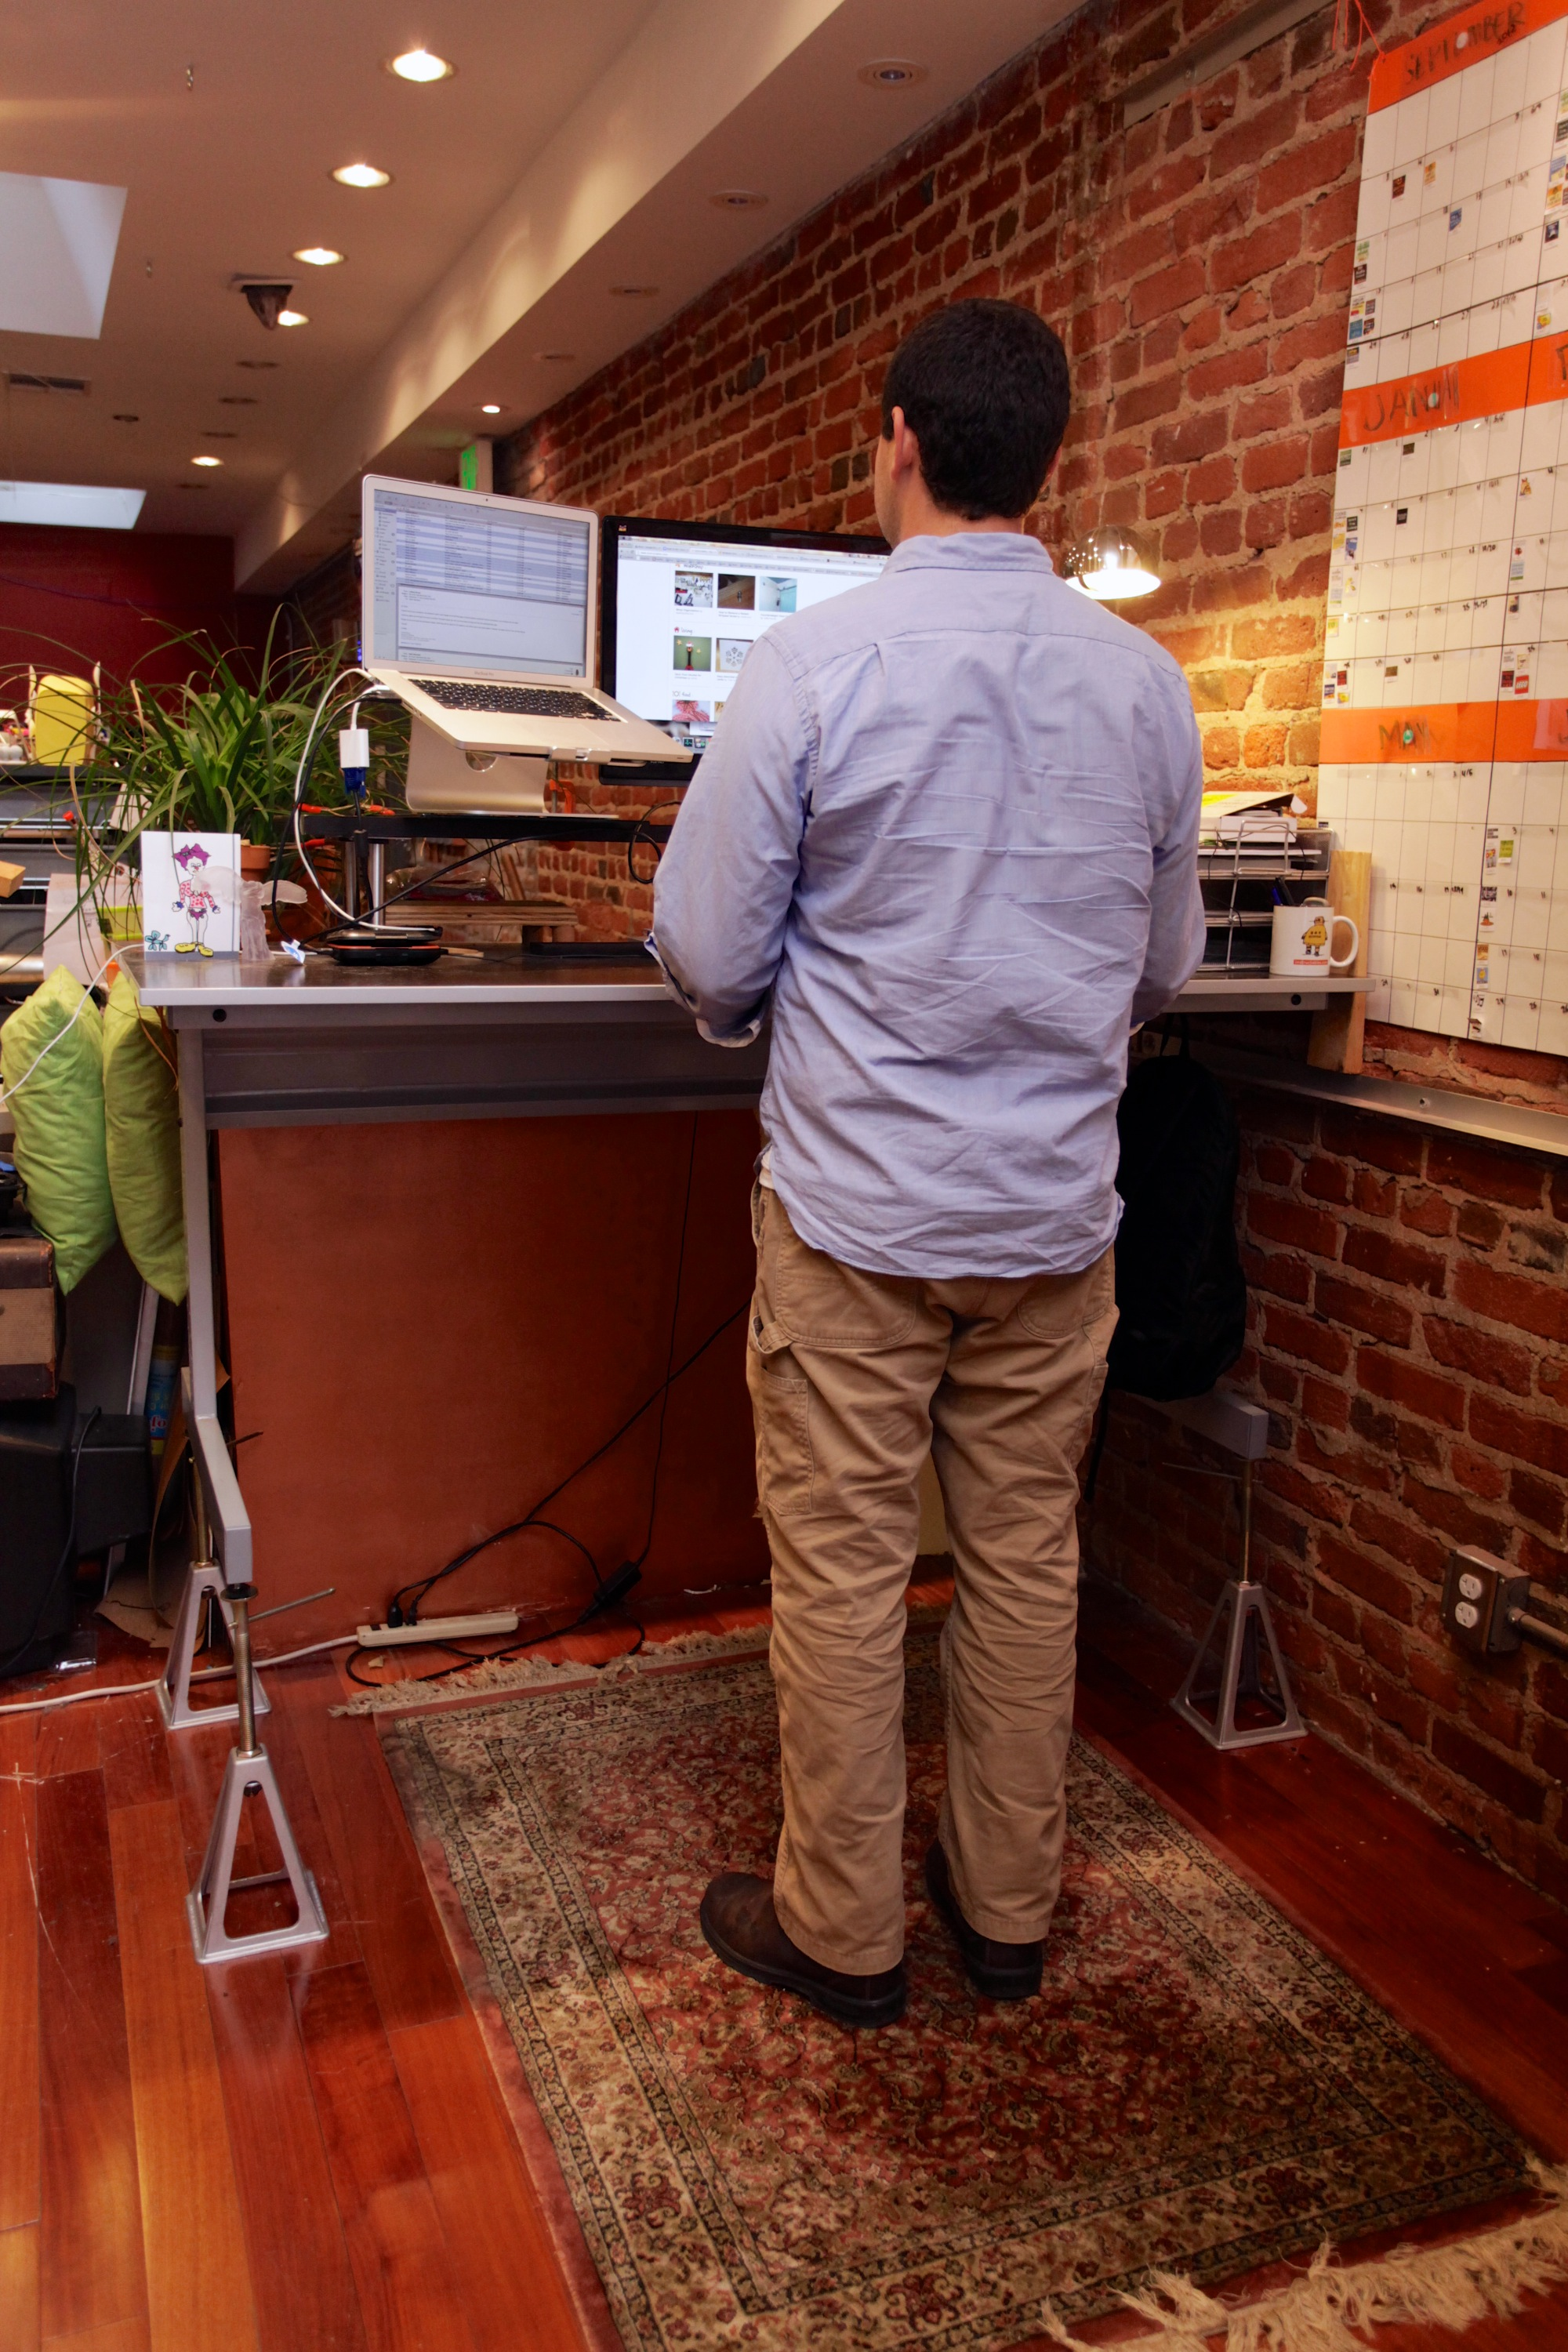 Picture of $38 Adjustable Standing Desk Conversion